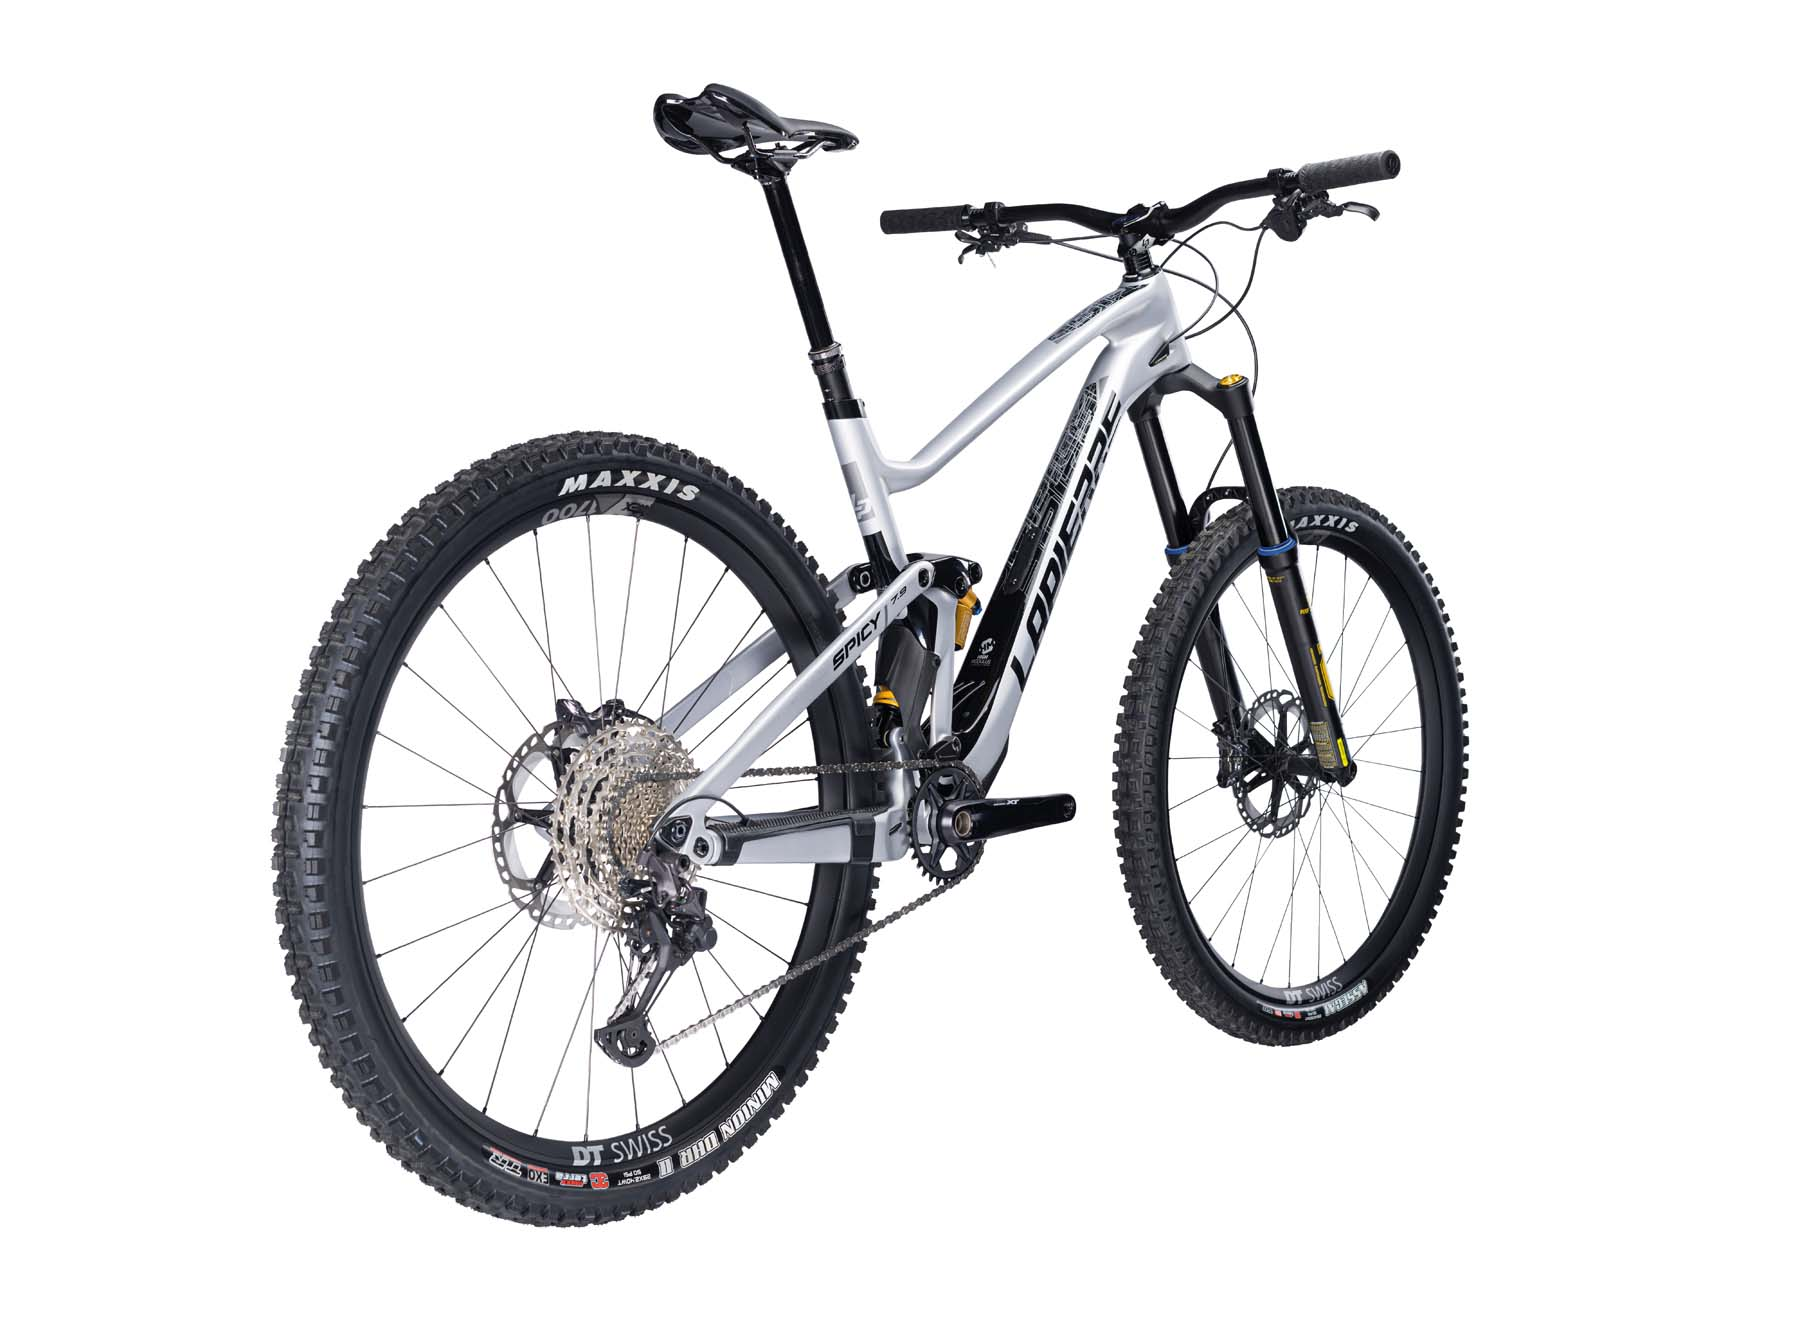 Lapierre Spicy CF 7.9 2021 Enduro Mountain Bike 3